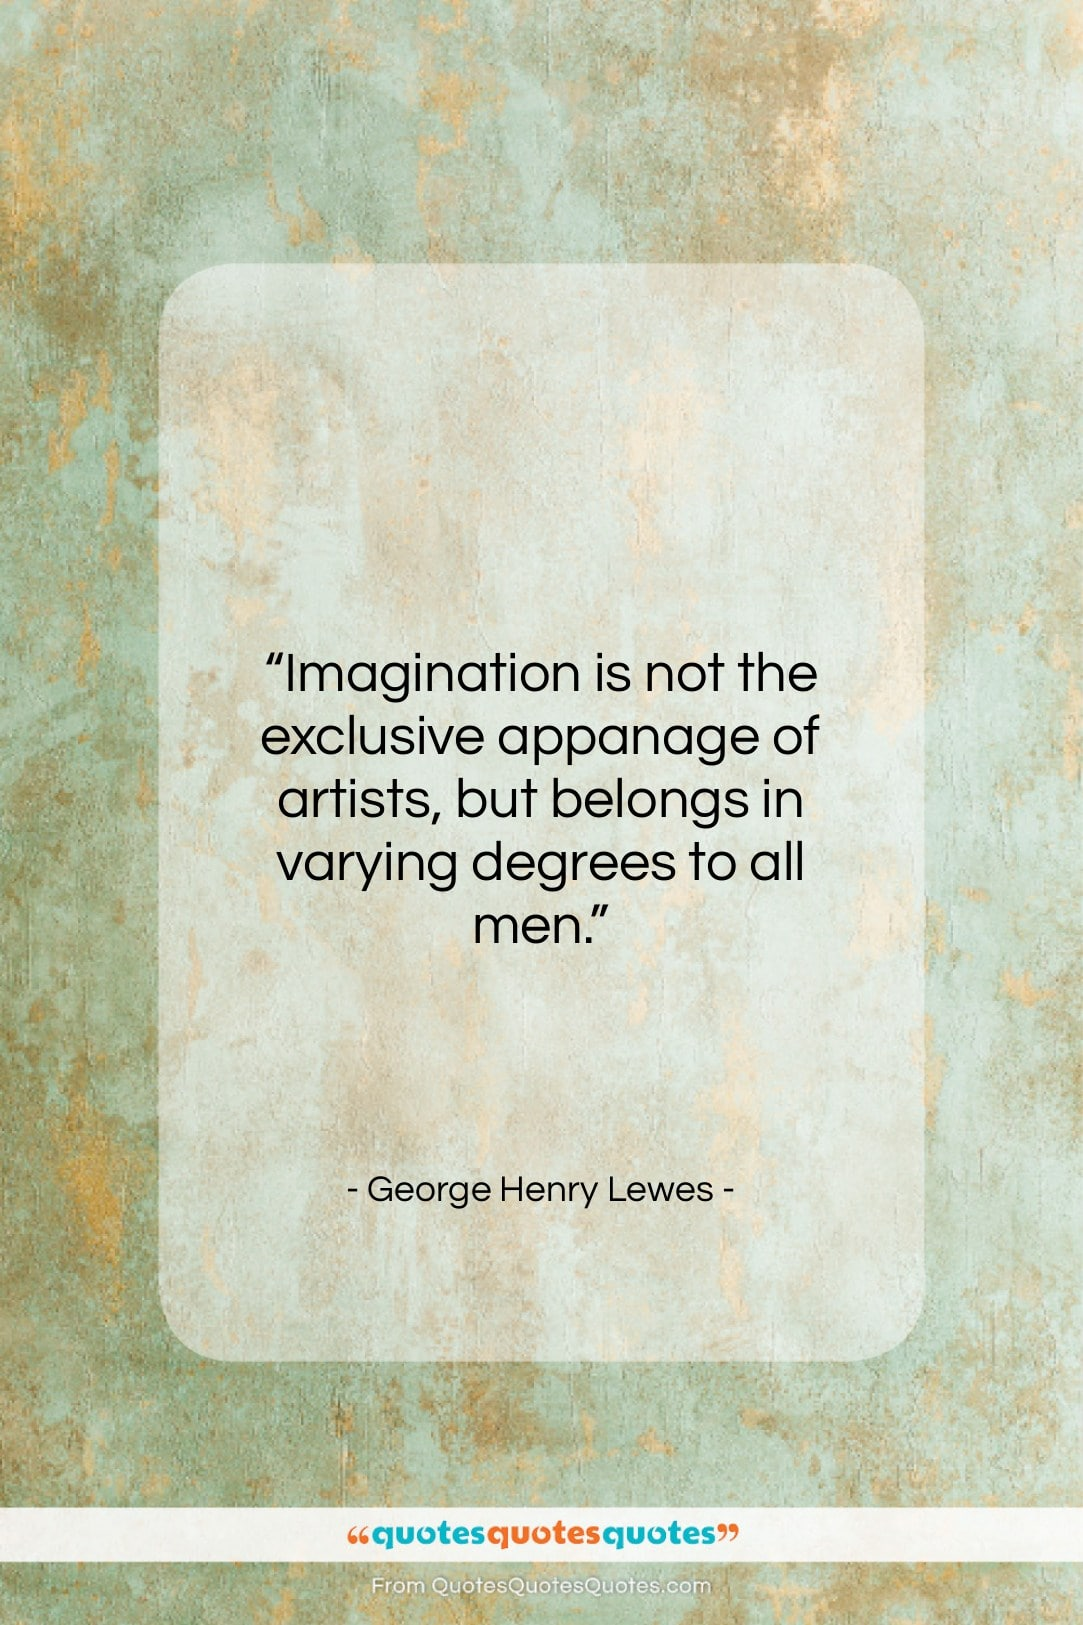 """George Henry Lewes quote: """"Imagination is not the exclusive appanage of…""""- at QuotesQuotesQuotes.com"""